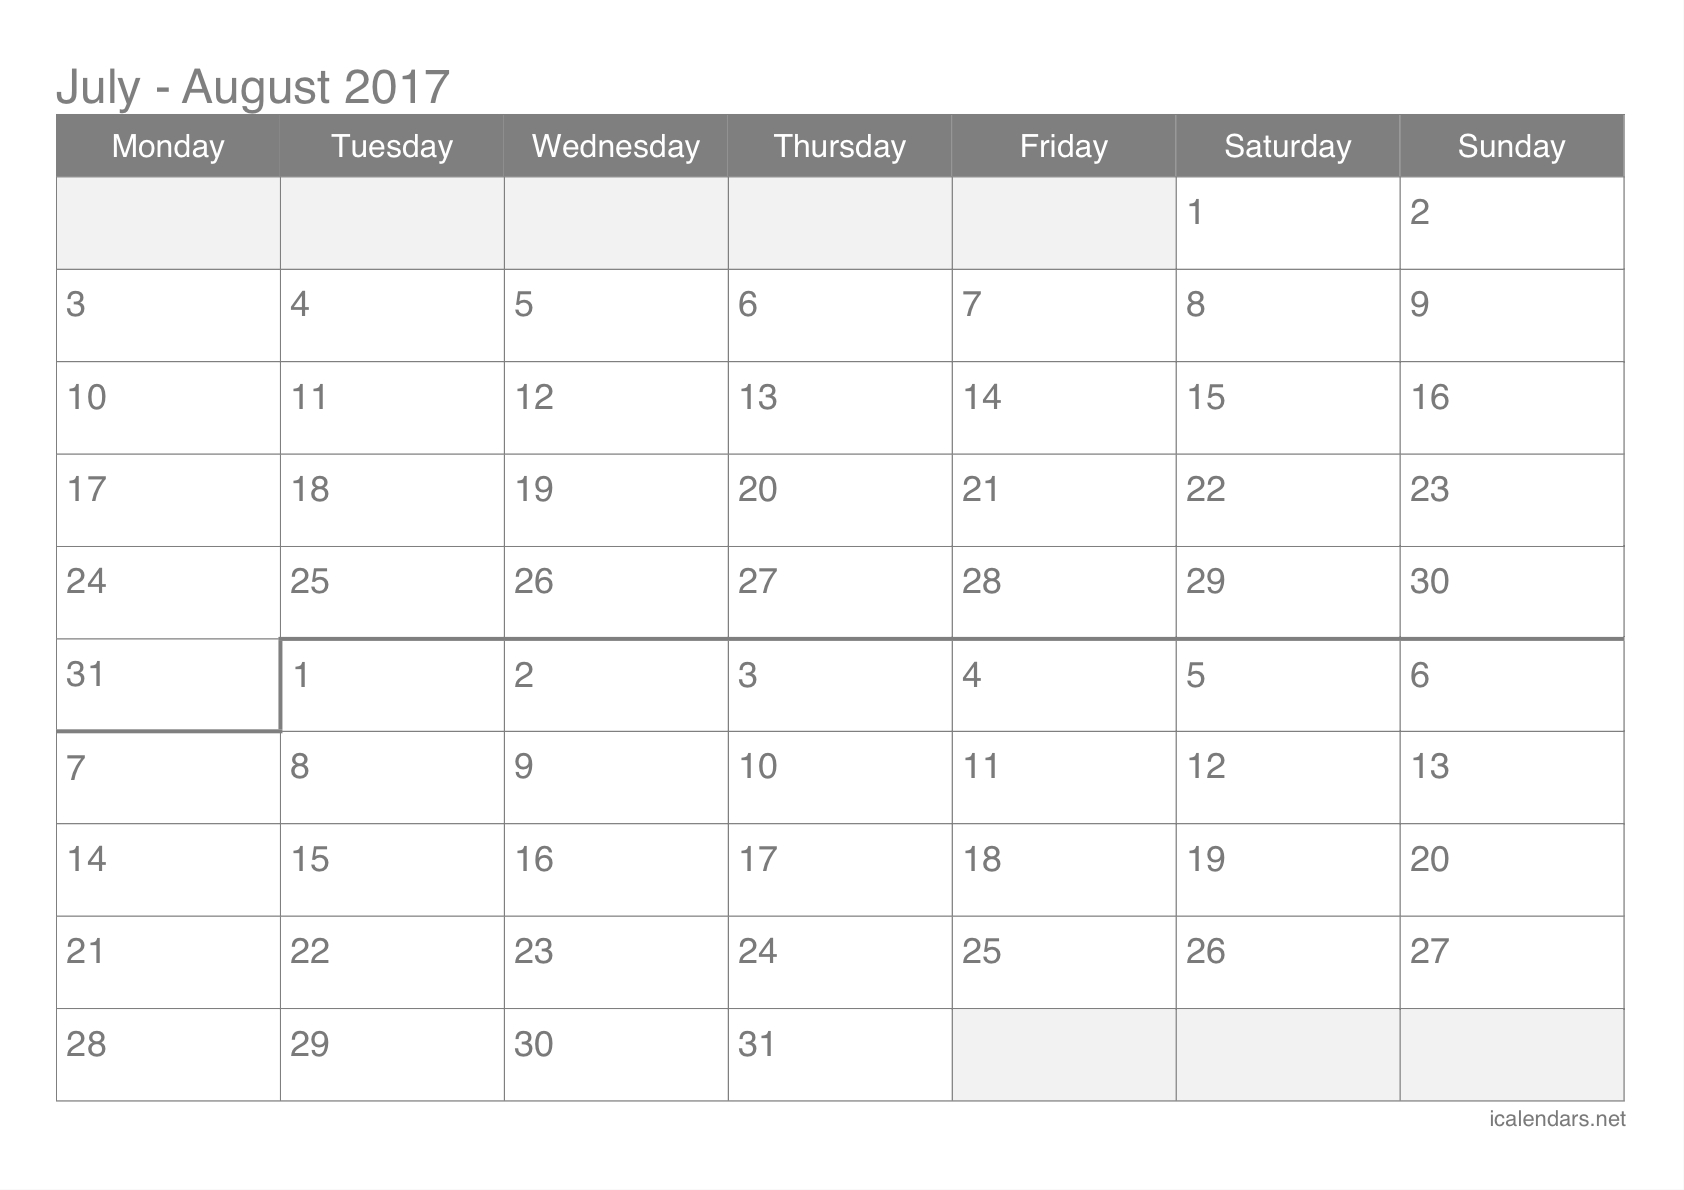 July And August 2017 Printable Calendar - Icalendars throughout Printable Blank Calendar July And August